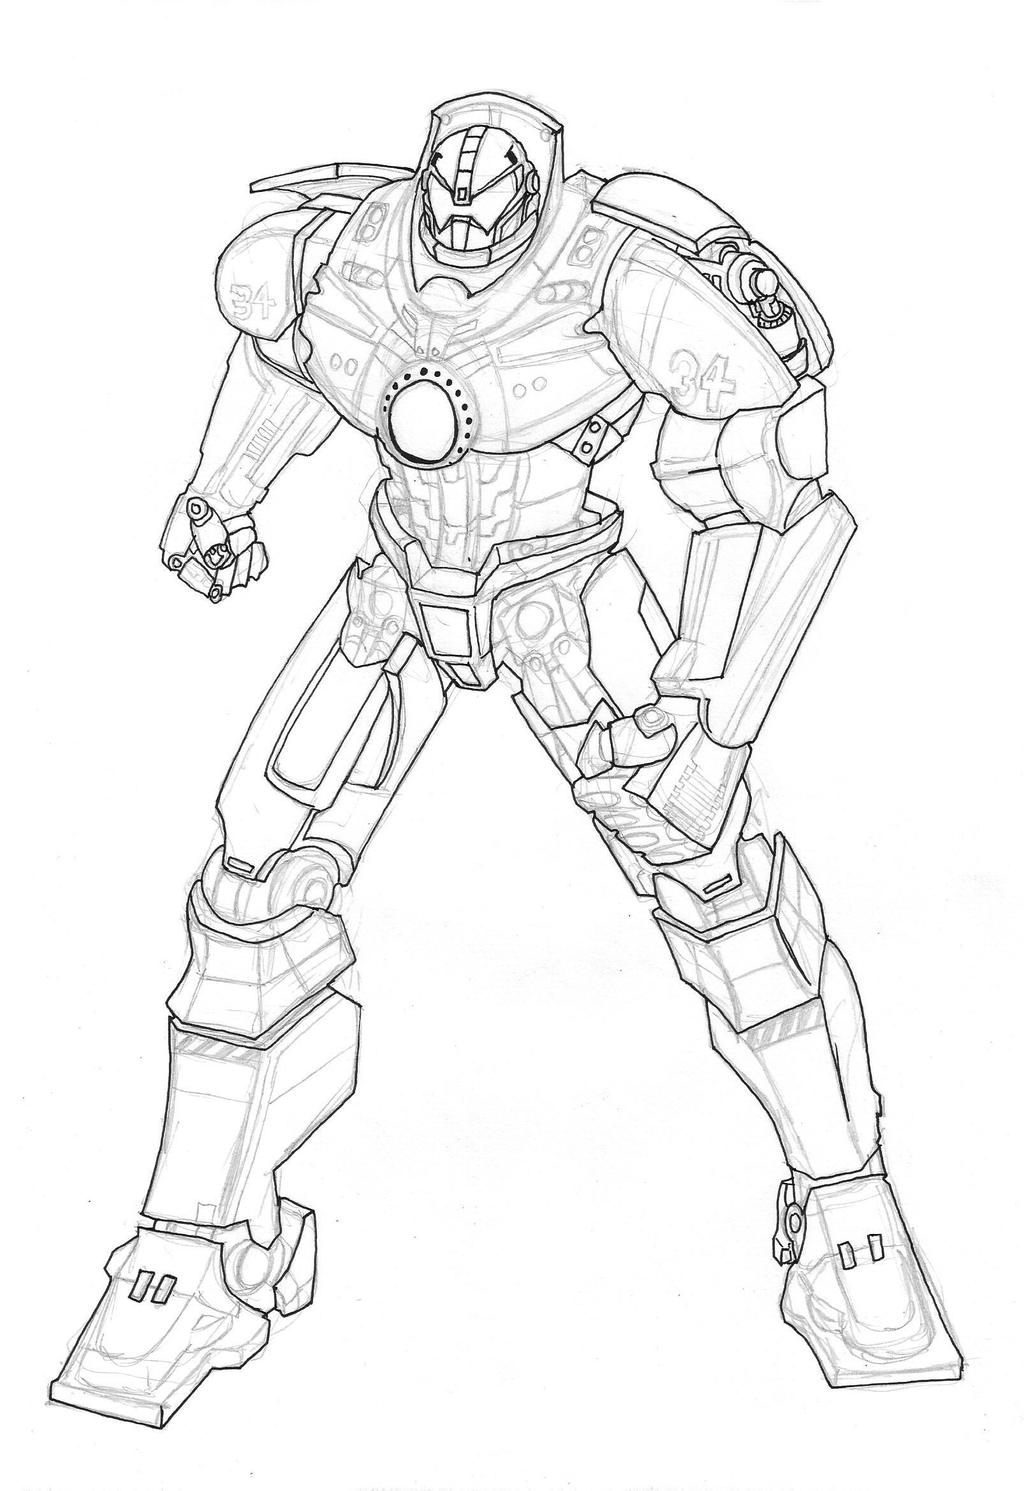 Gipsy Danger Sketch By Camposbane On Deviantart